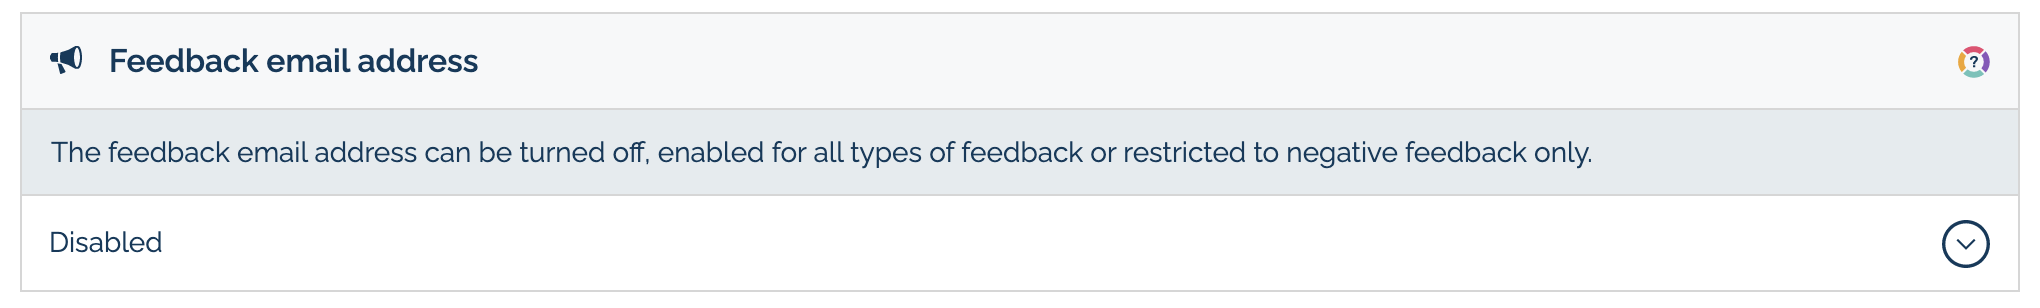 Leave Feedback email address option in MyMalcolm